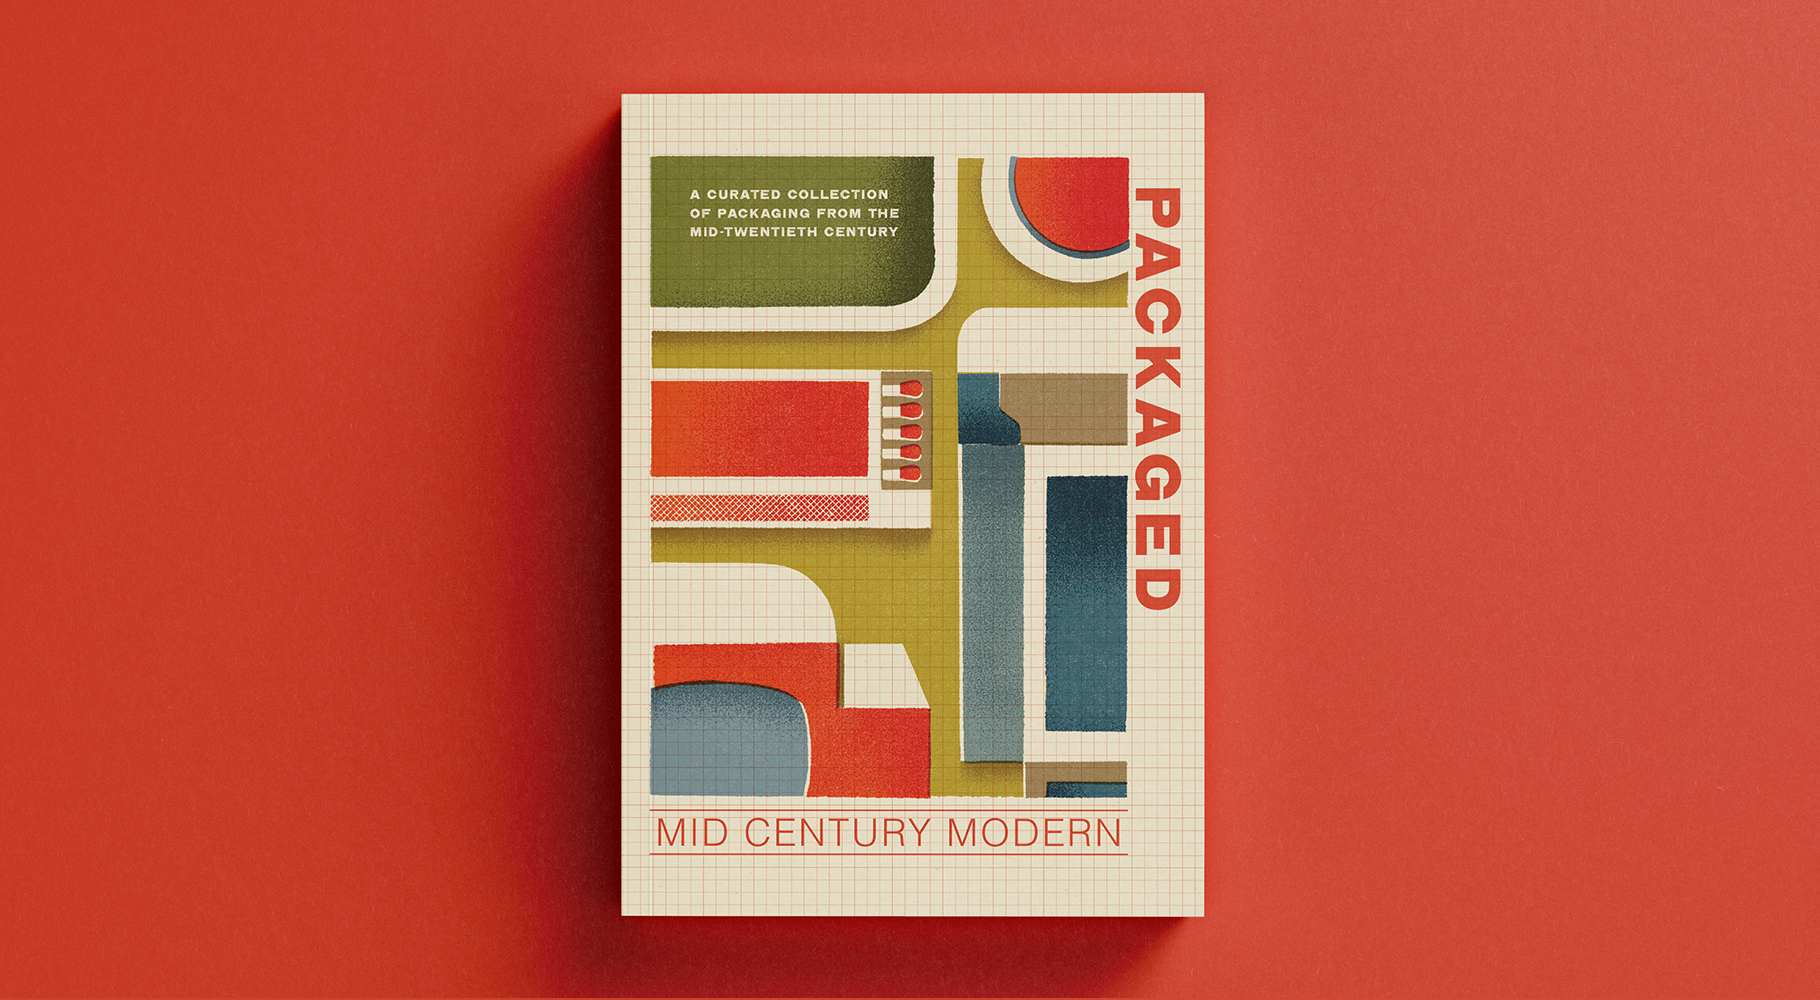 The cover for a book called Packaged - Mid Century Modern, featuring a vintage style illustration of flat packaging designs.